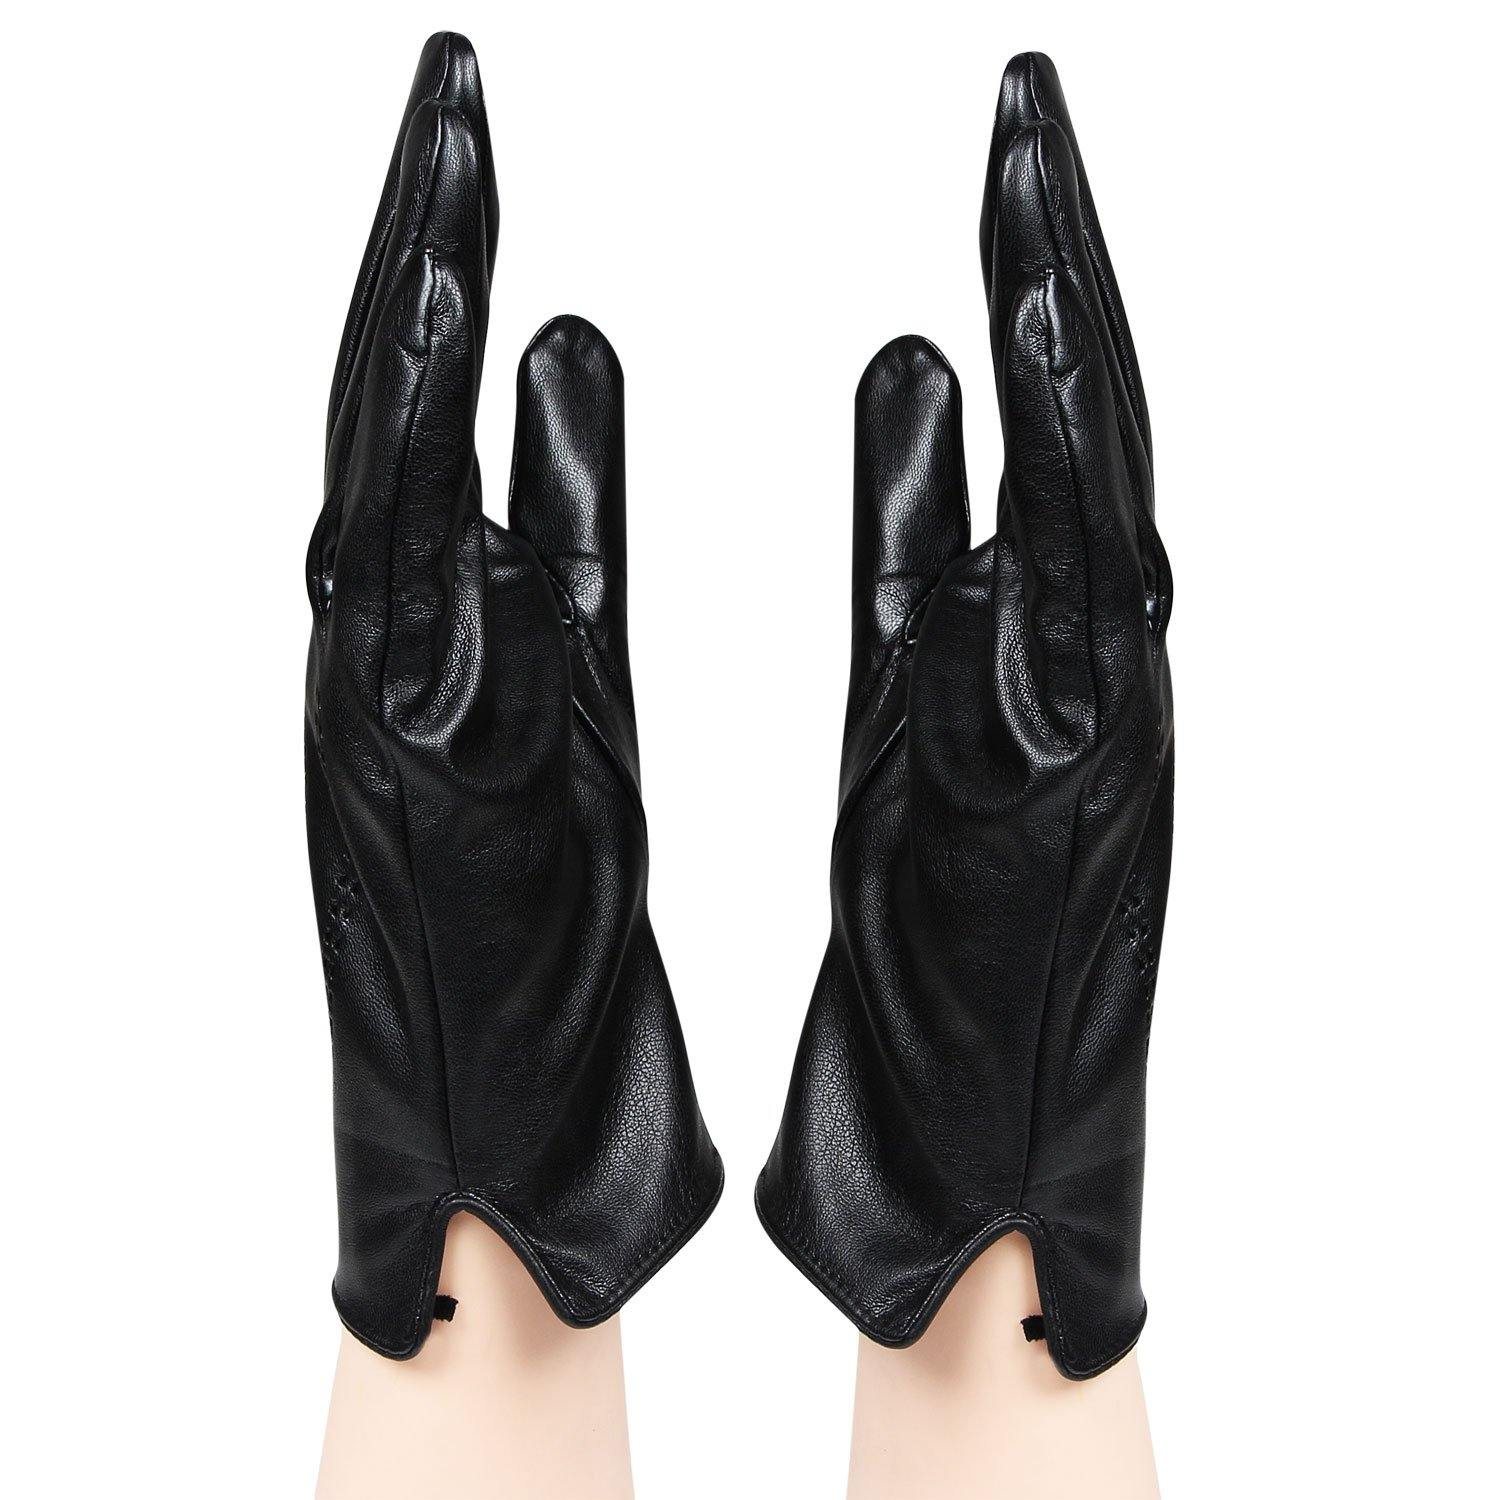 Men's designer Gloves Black